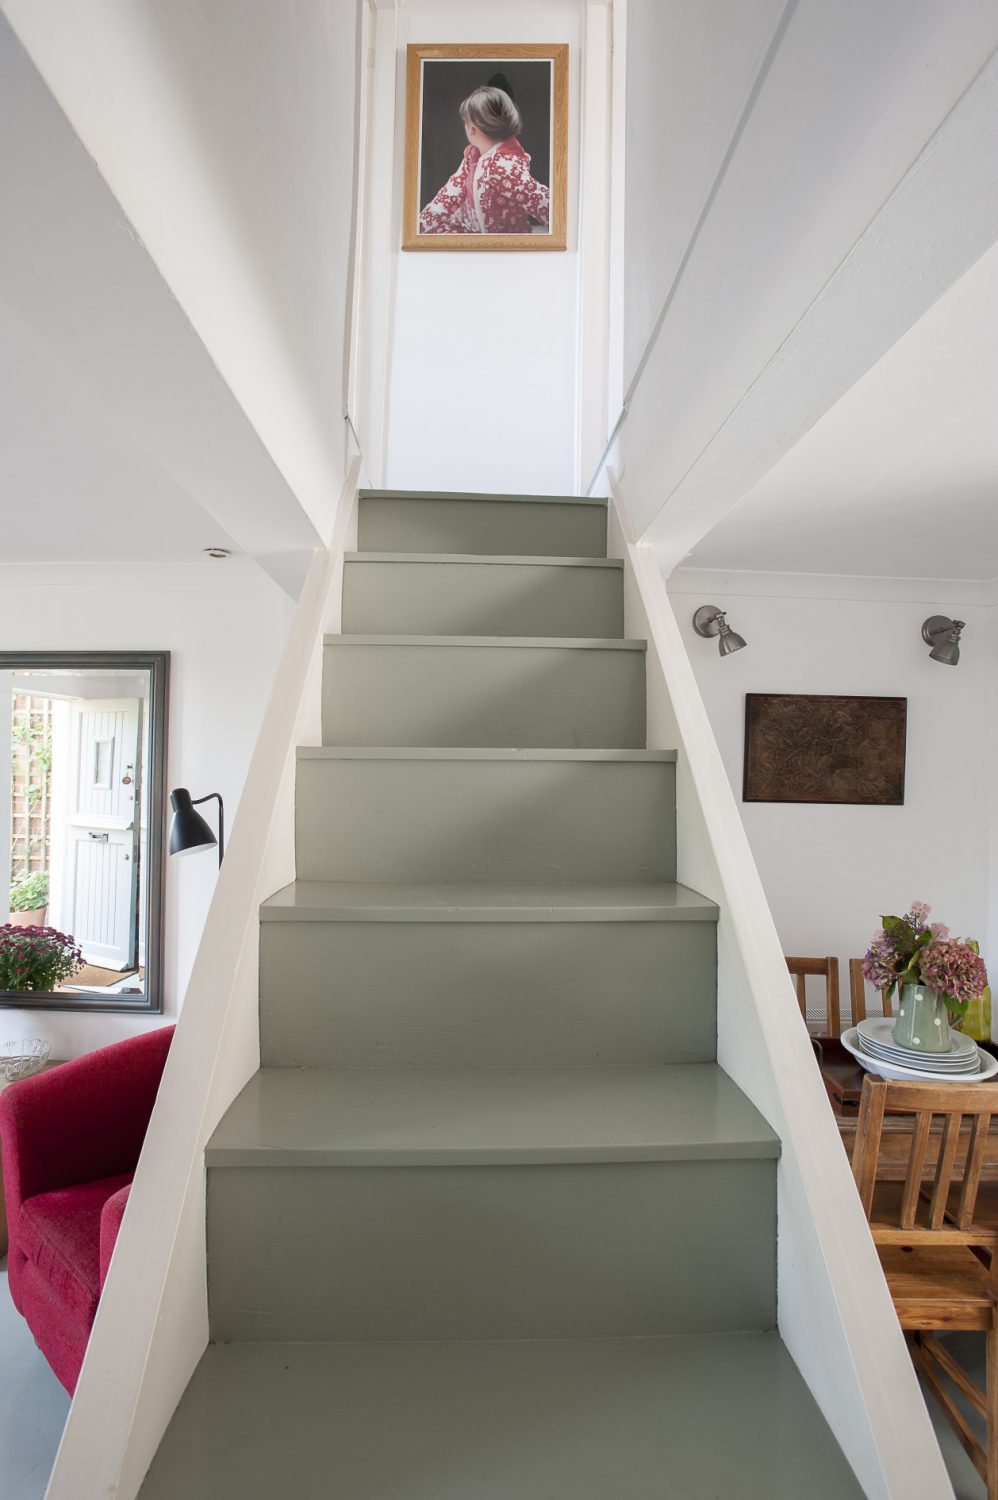 The staircase in the centre of the living room leads to the two upstairs bedrooms